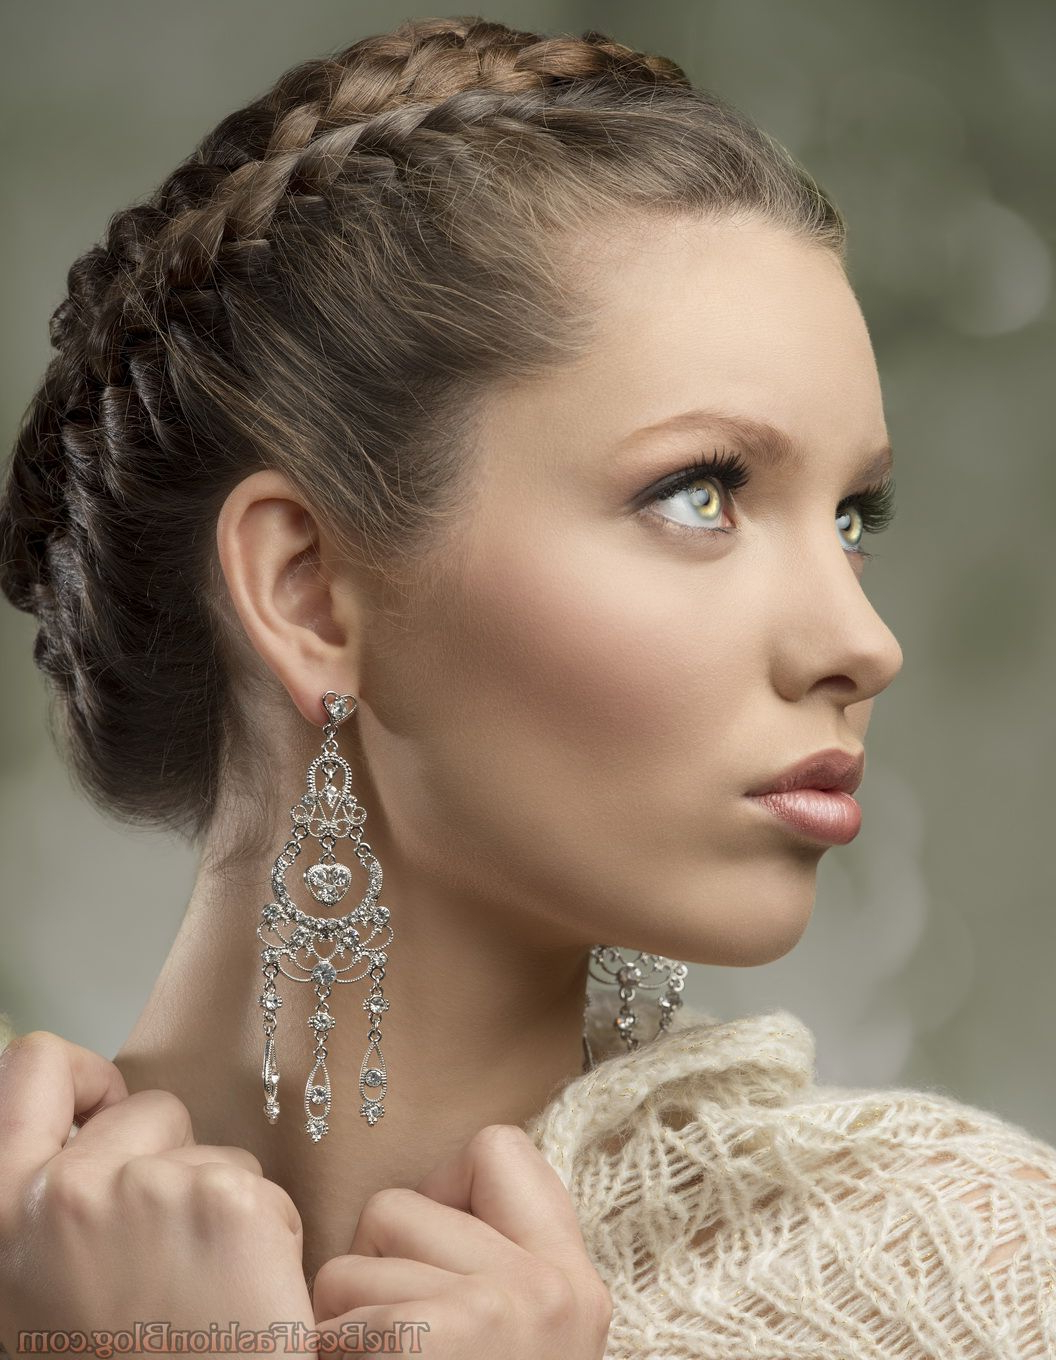 Braided Hairstyles For Special Occasions 2019 With Regard To Trendy Medium Hairstyles For Special Occasions (View 11 of 20)